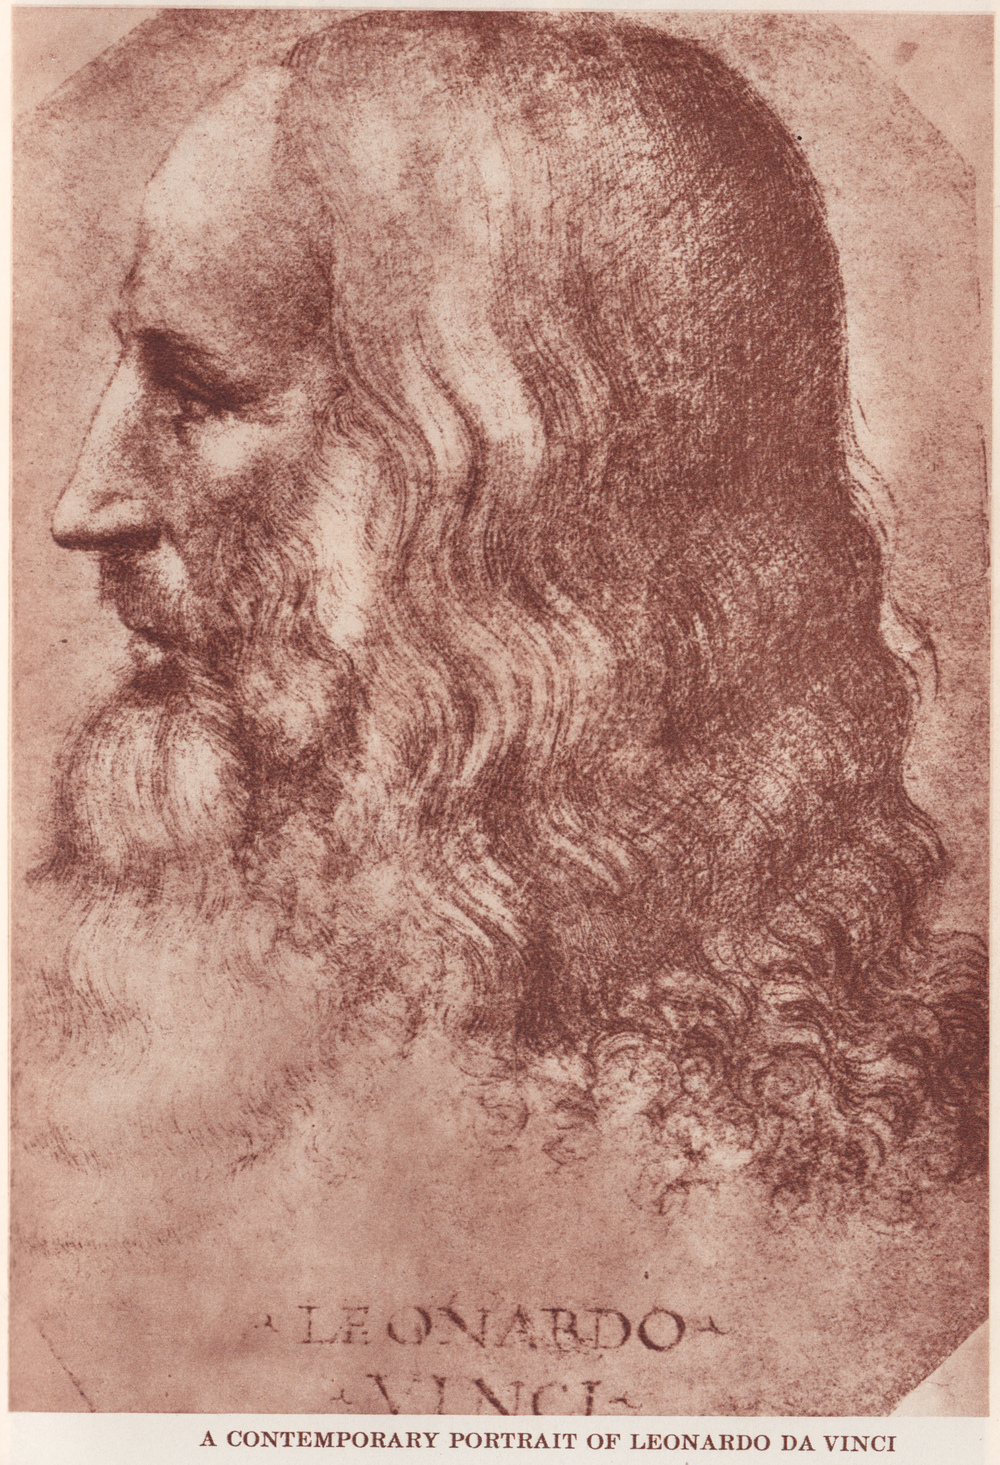 davinci-contempt-portrait--romance.jpg